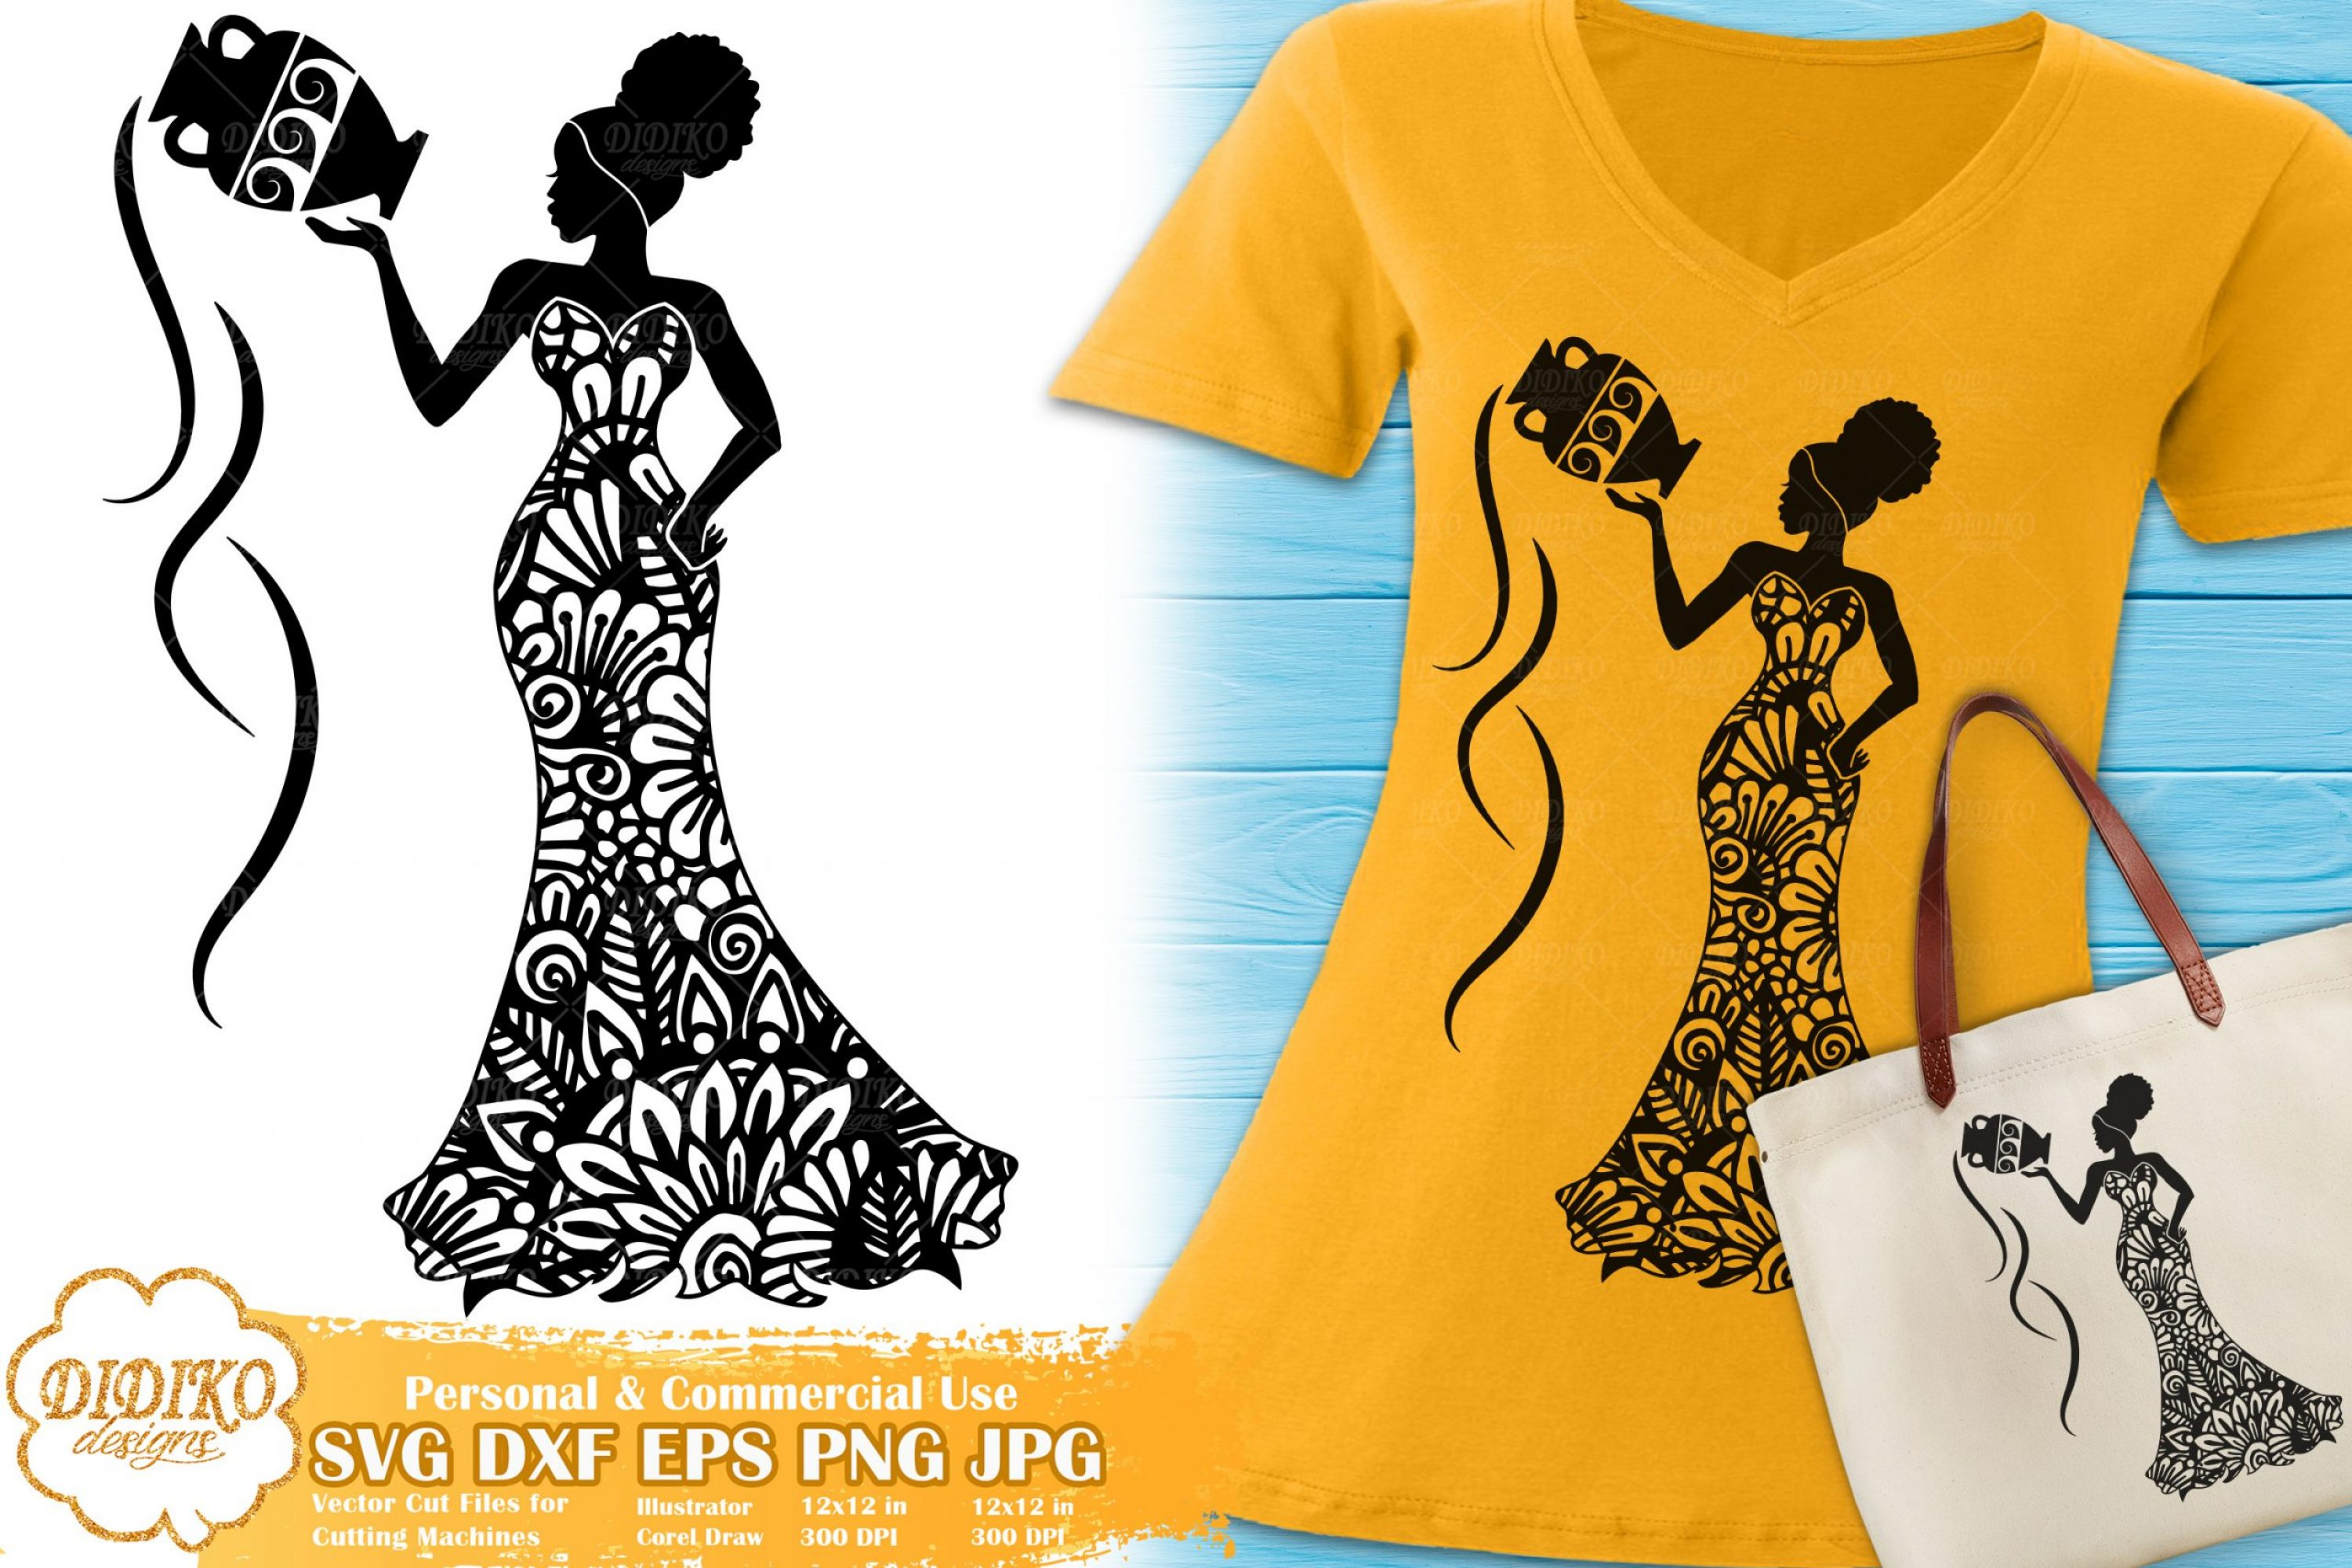 Aquarius SVG | Black Woman SVG | Zentangle Cut File